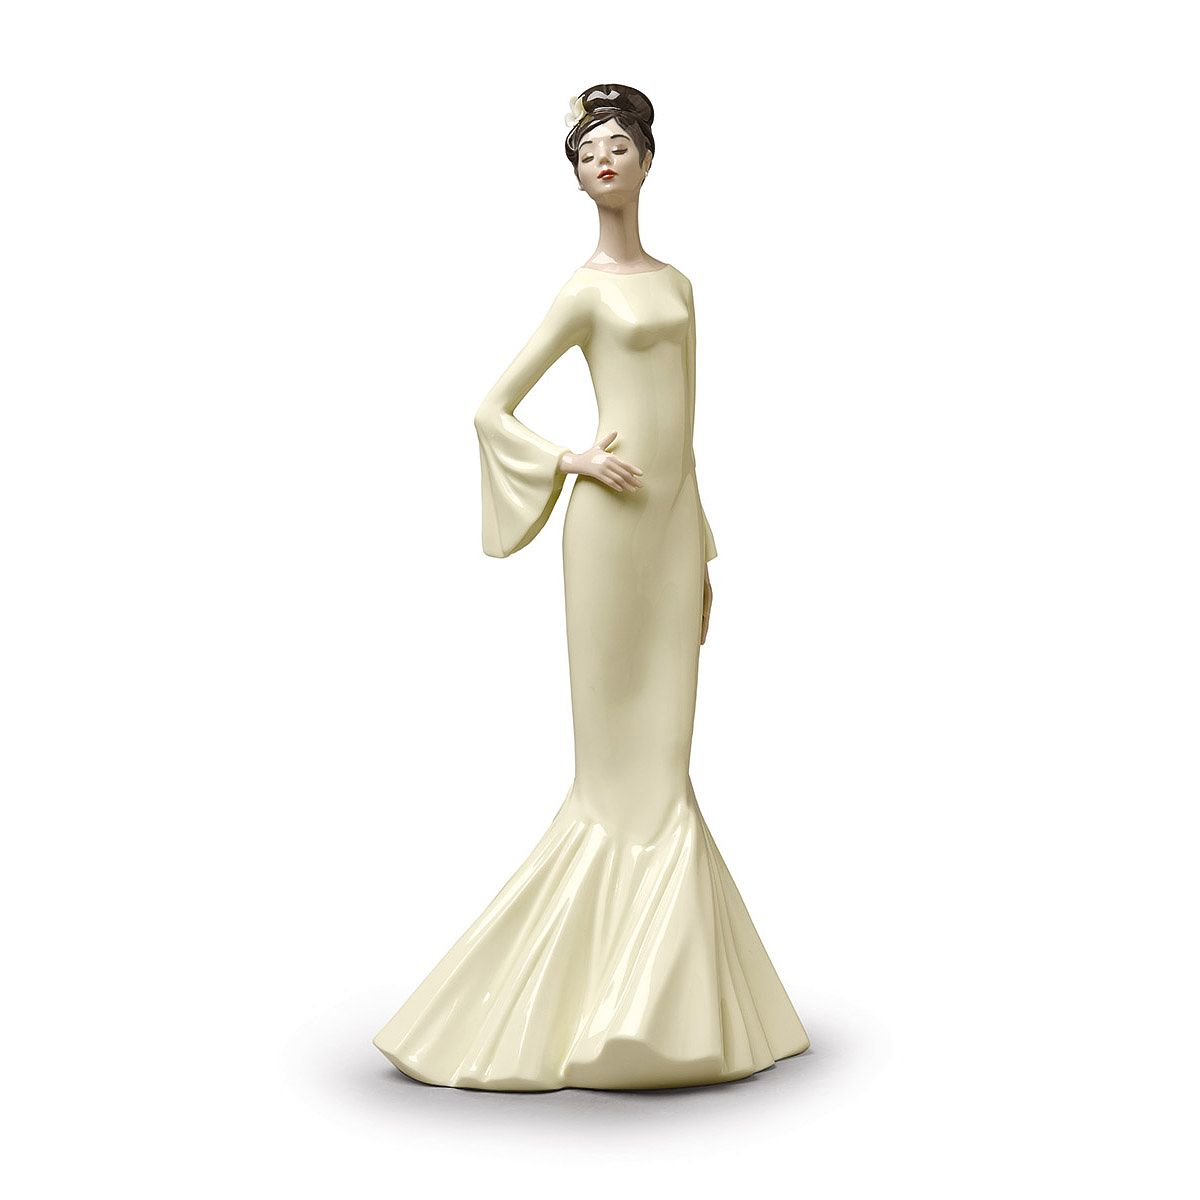 Nao Porcelain Gala Party Figurine - Product number 8196397